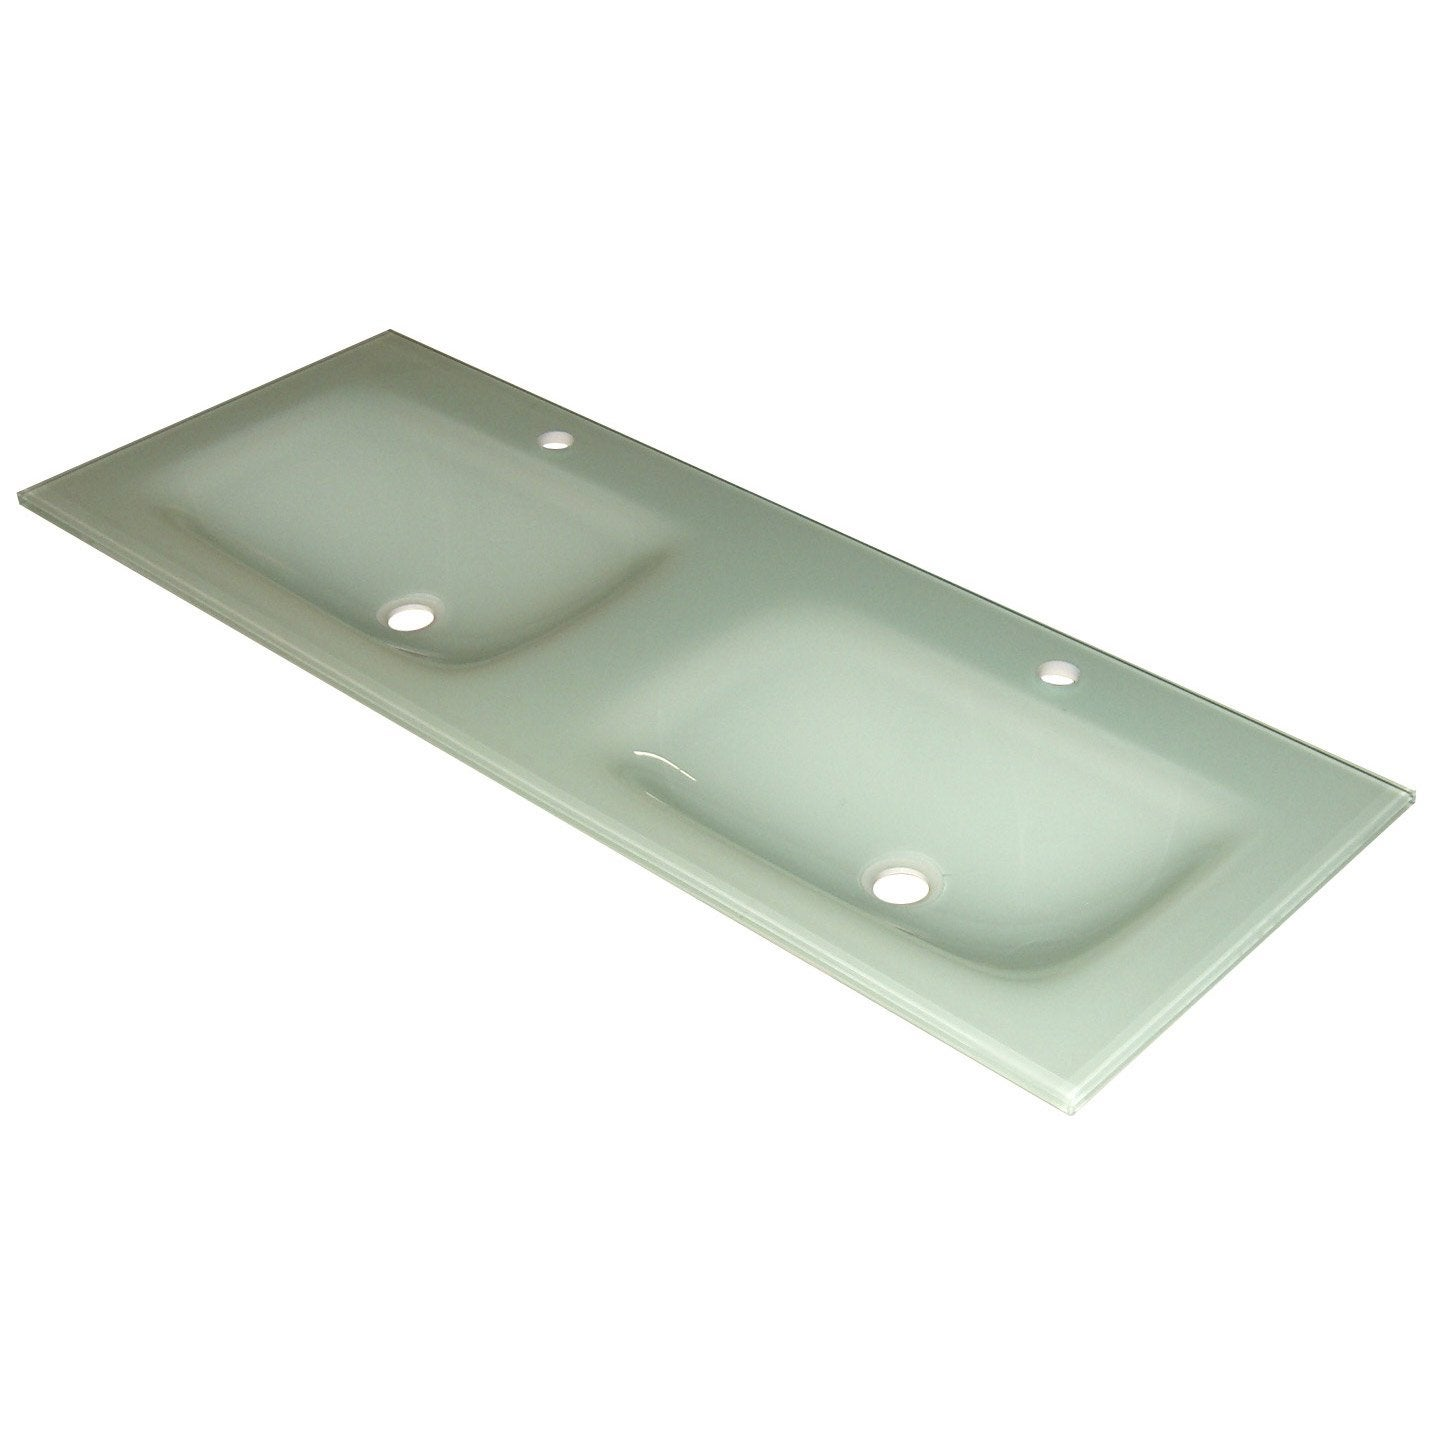 Plan double vasques fjord verre blanc l120xl12xp45 5 cm leroy merlin - Verre trempe leroy merlin ...